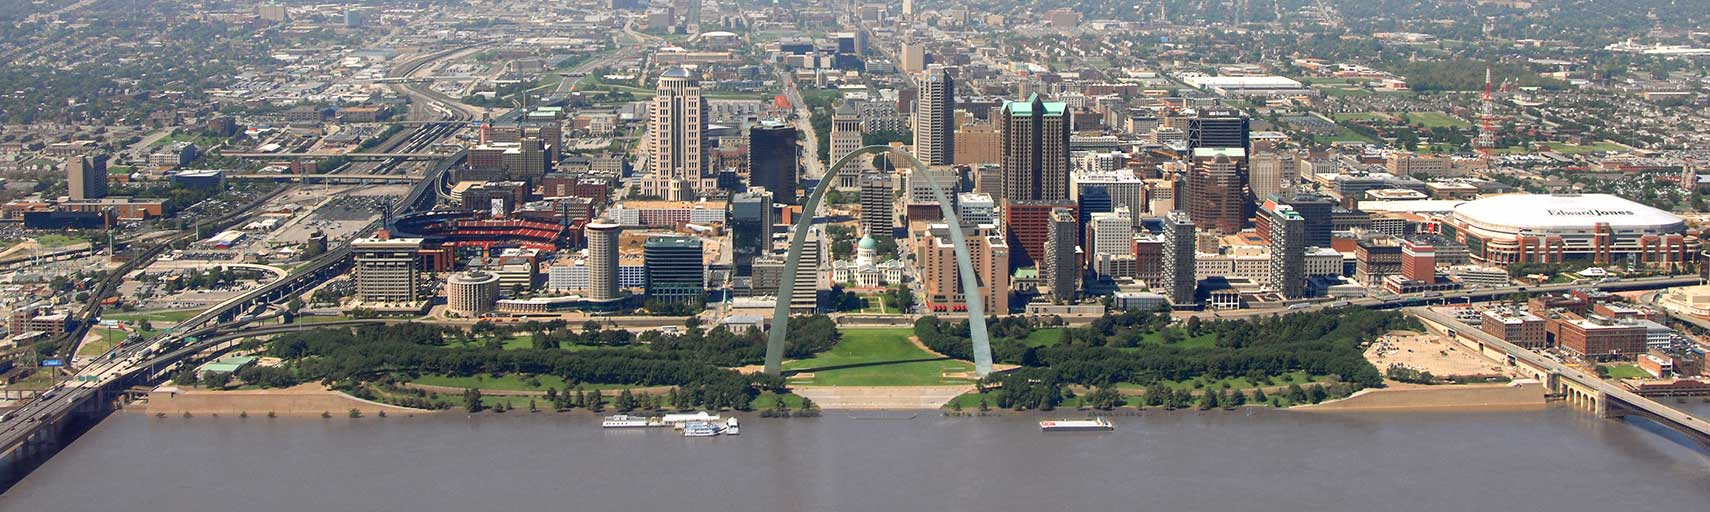 Google Map Of The City Of Saint Louis Missouri USA Nations - Missouri in usa map